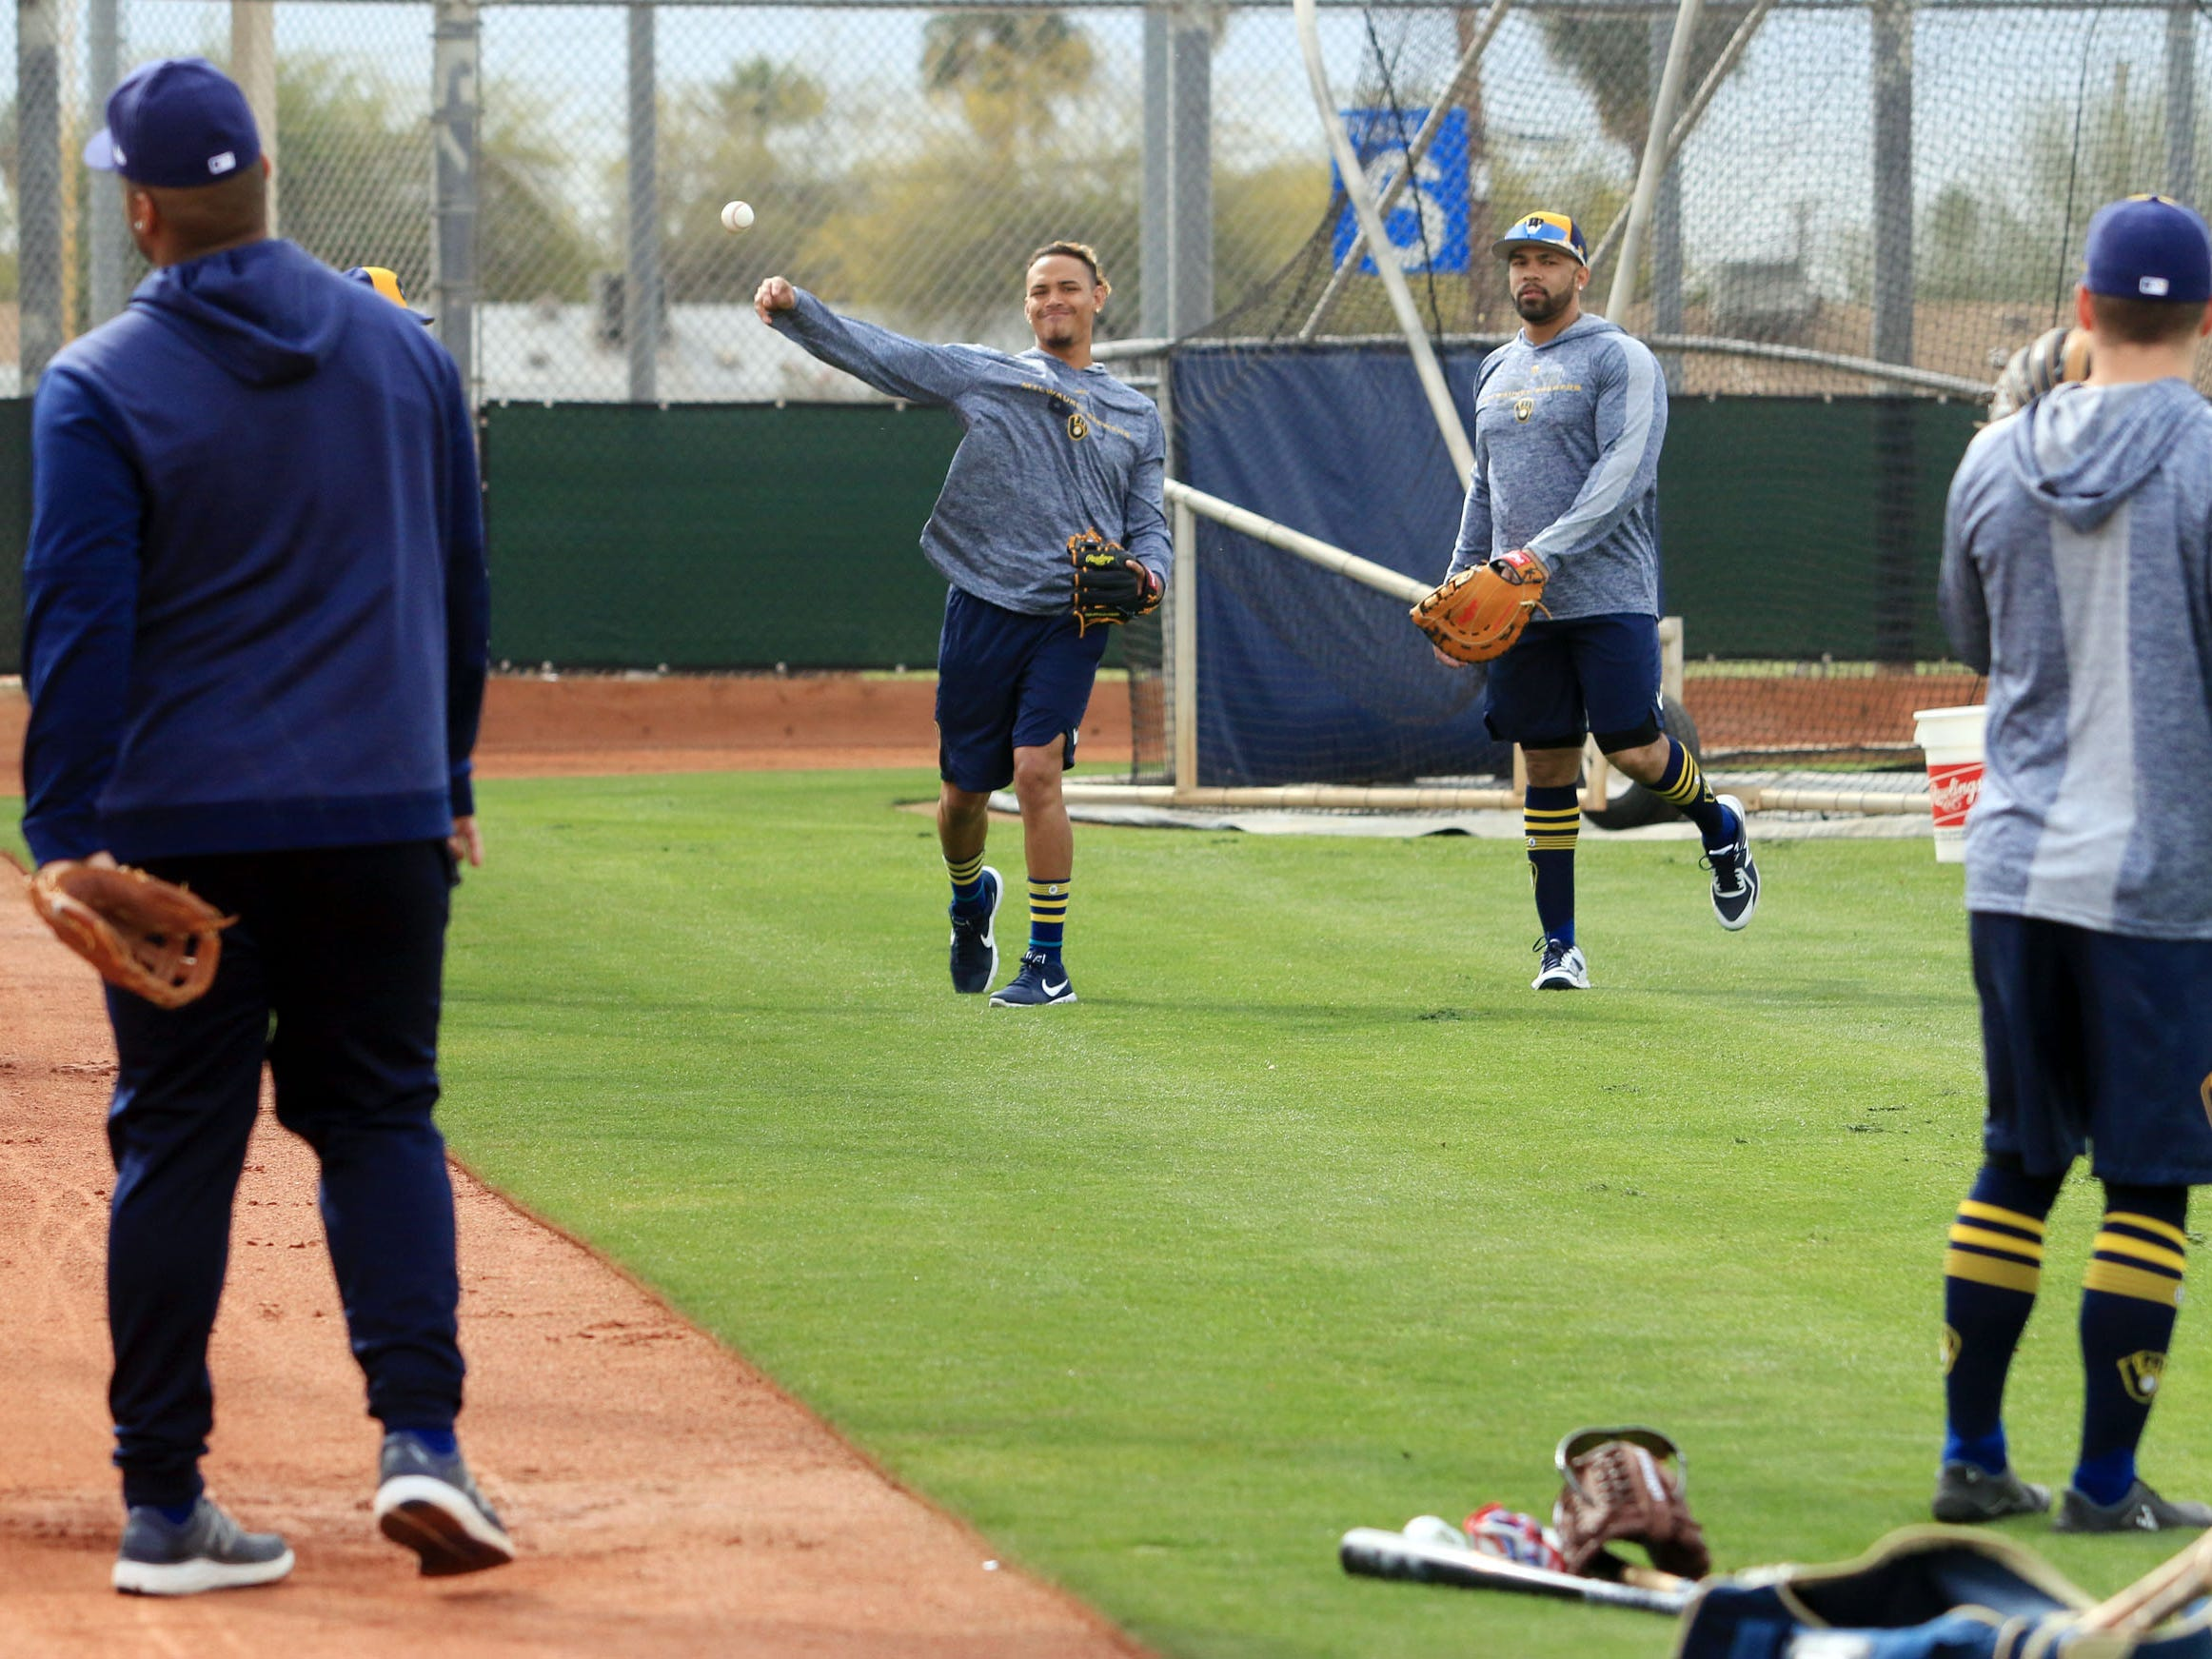 Position players who attended the first day of the Brewers' spring training workouts warm up their arms by playing play catch before practice began in earnest on Wednesday in Phoenix.